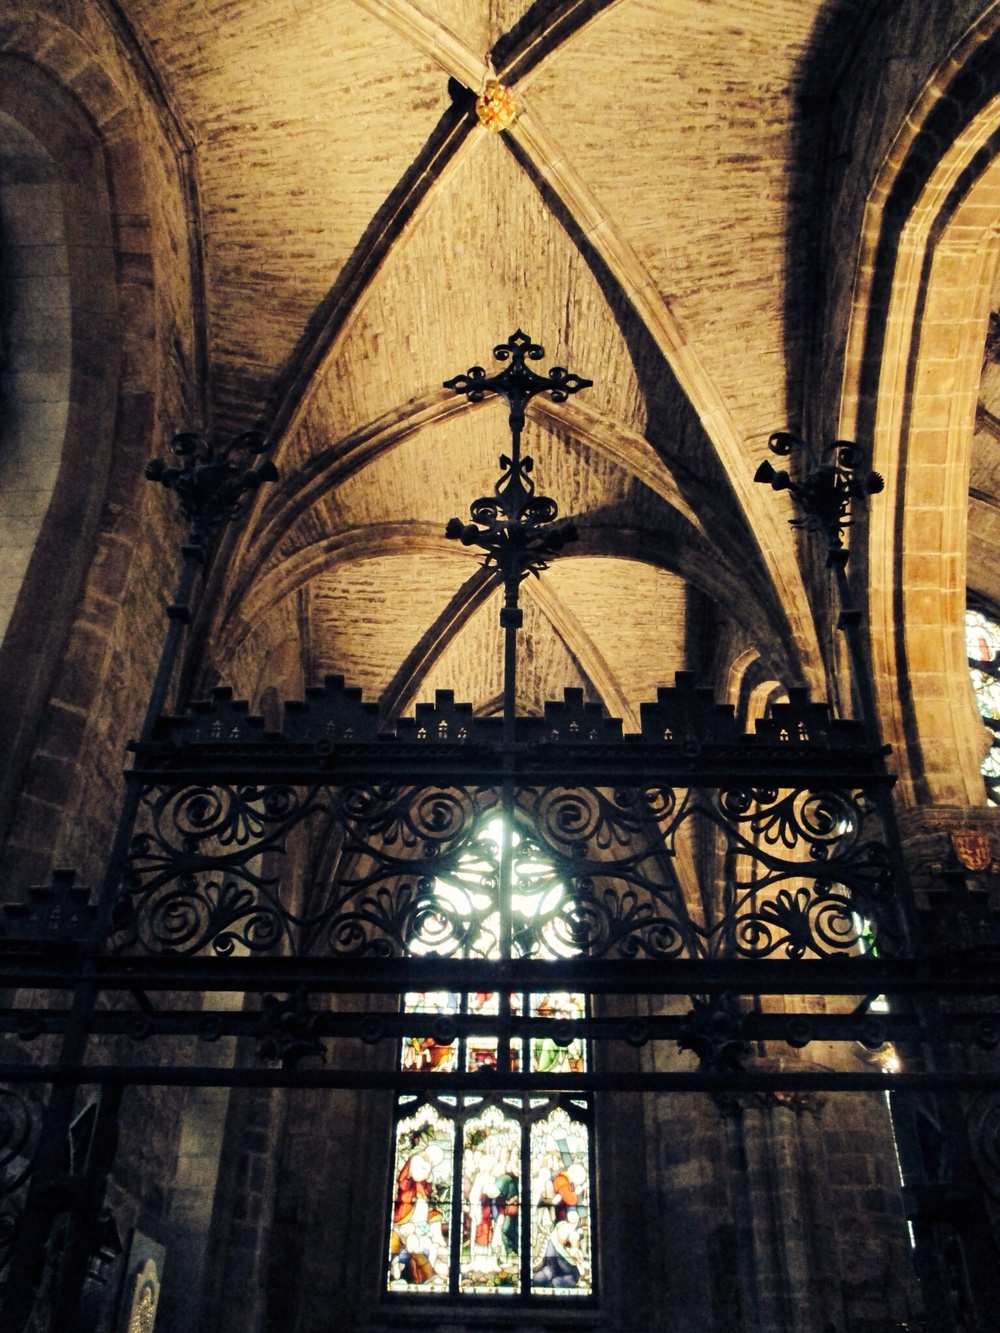 Ironwork, stained glass and the gorgeous ornate ceiling at St. Giles' Cathedral